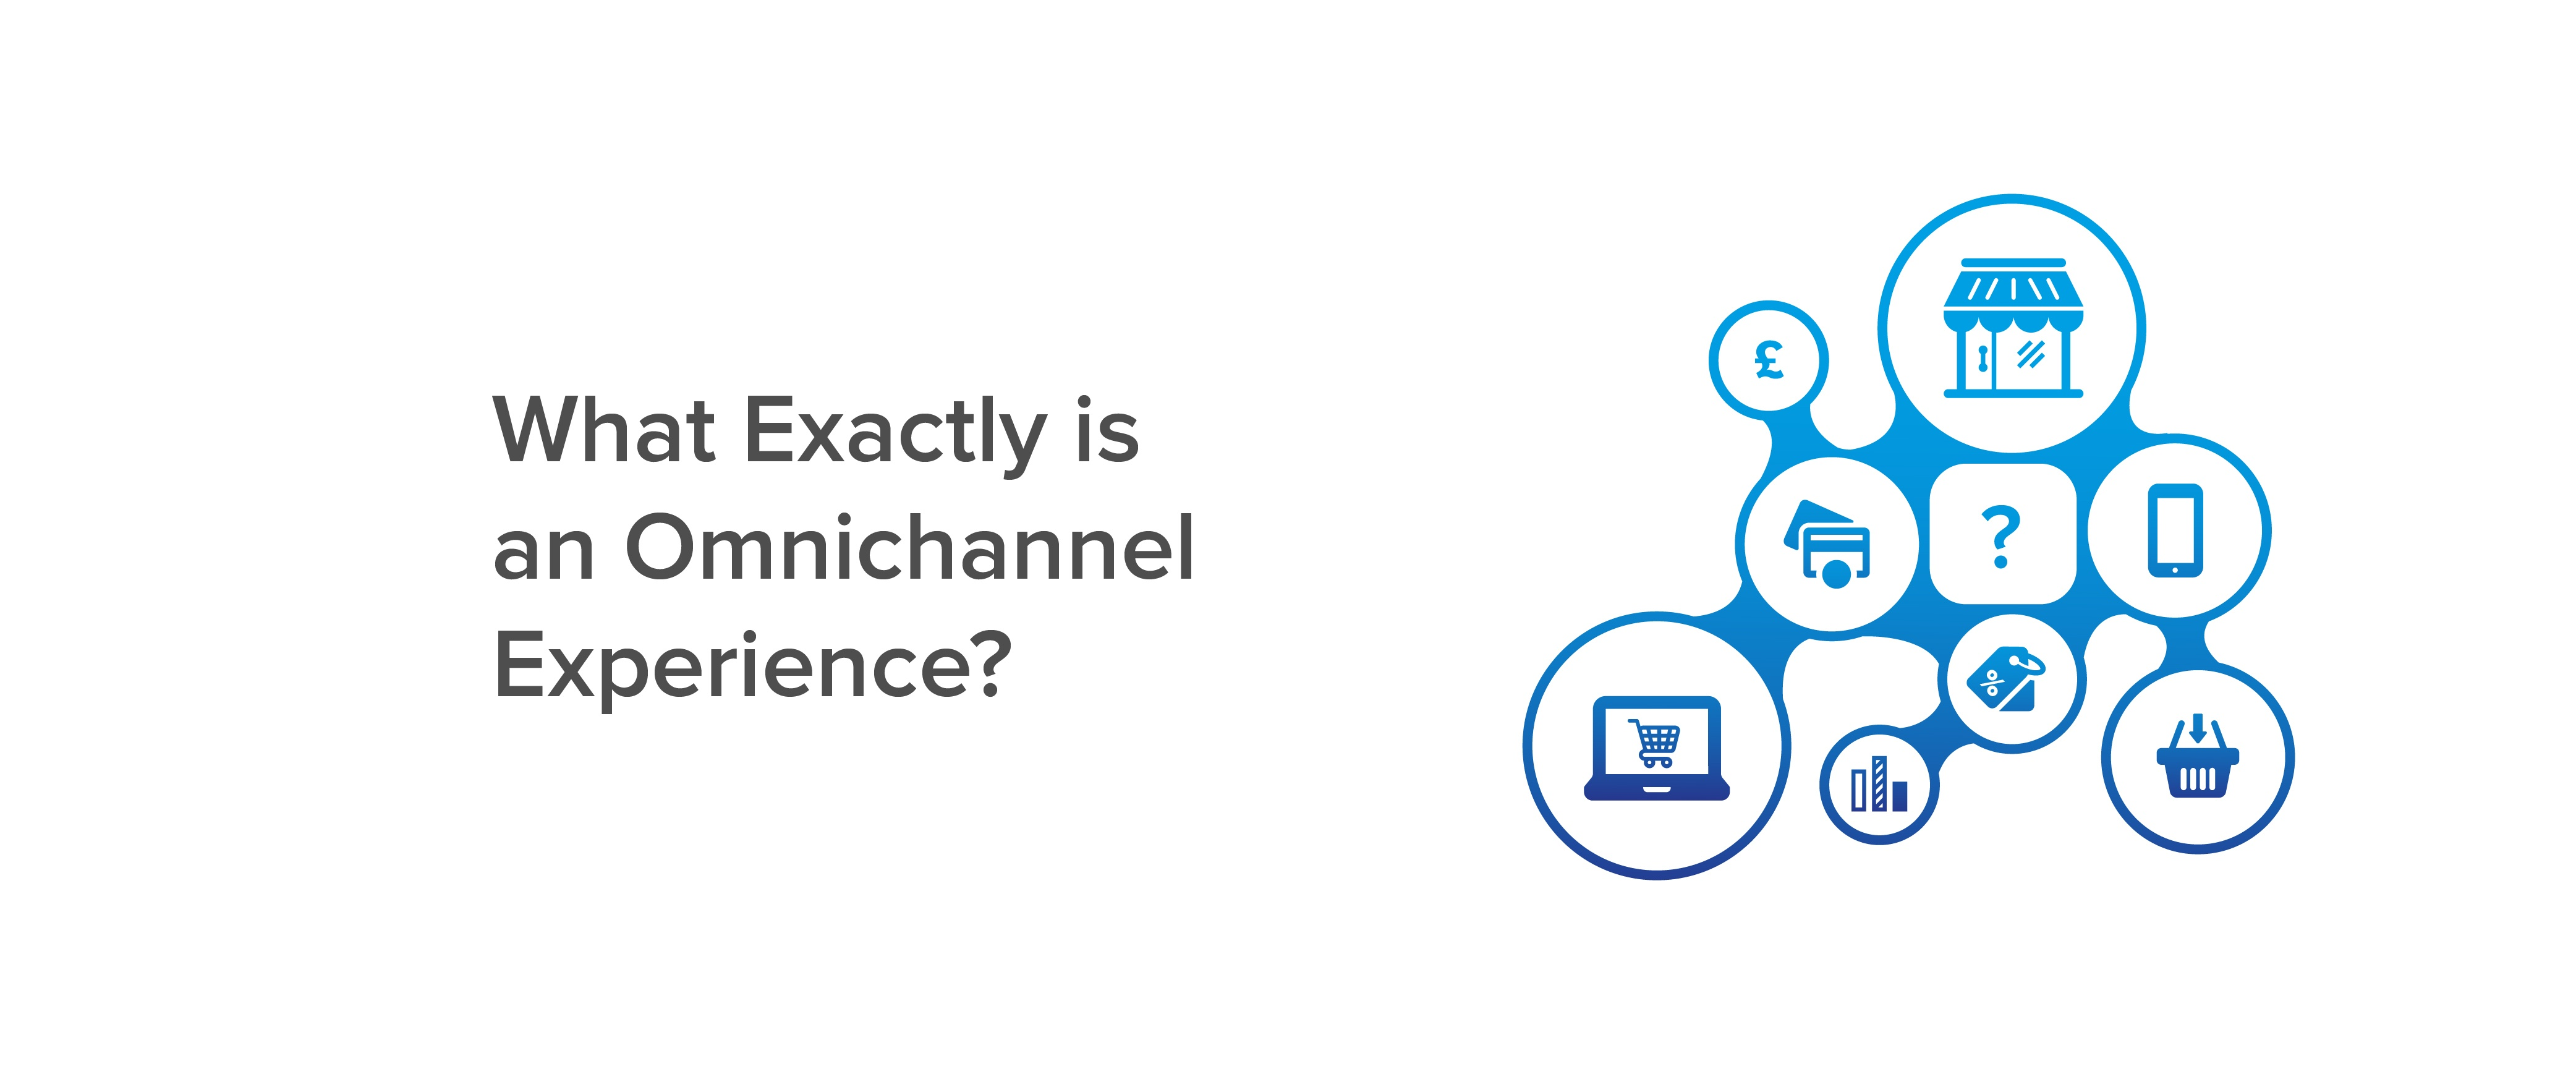 What Exactly is an Omnichannel Experience?